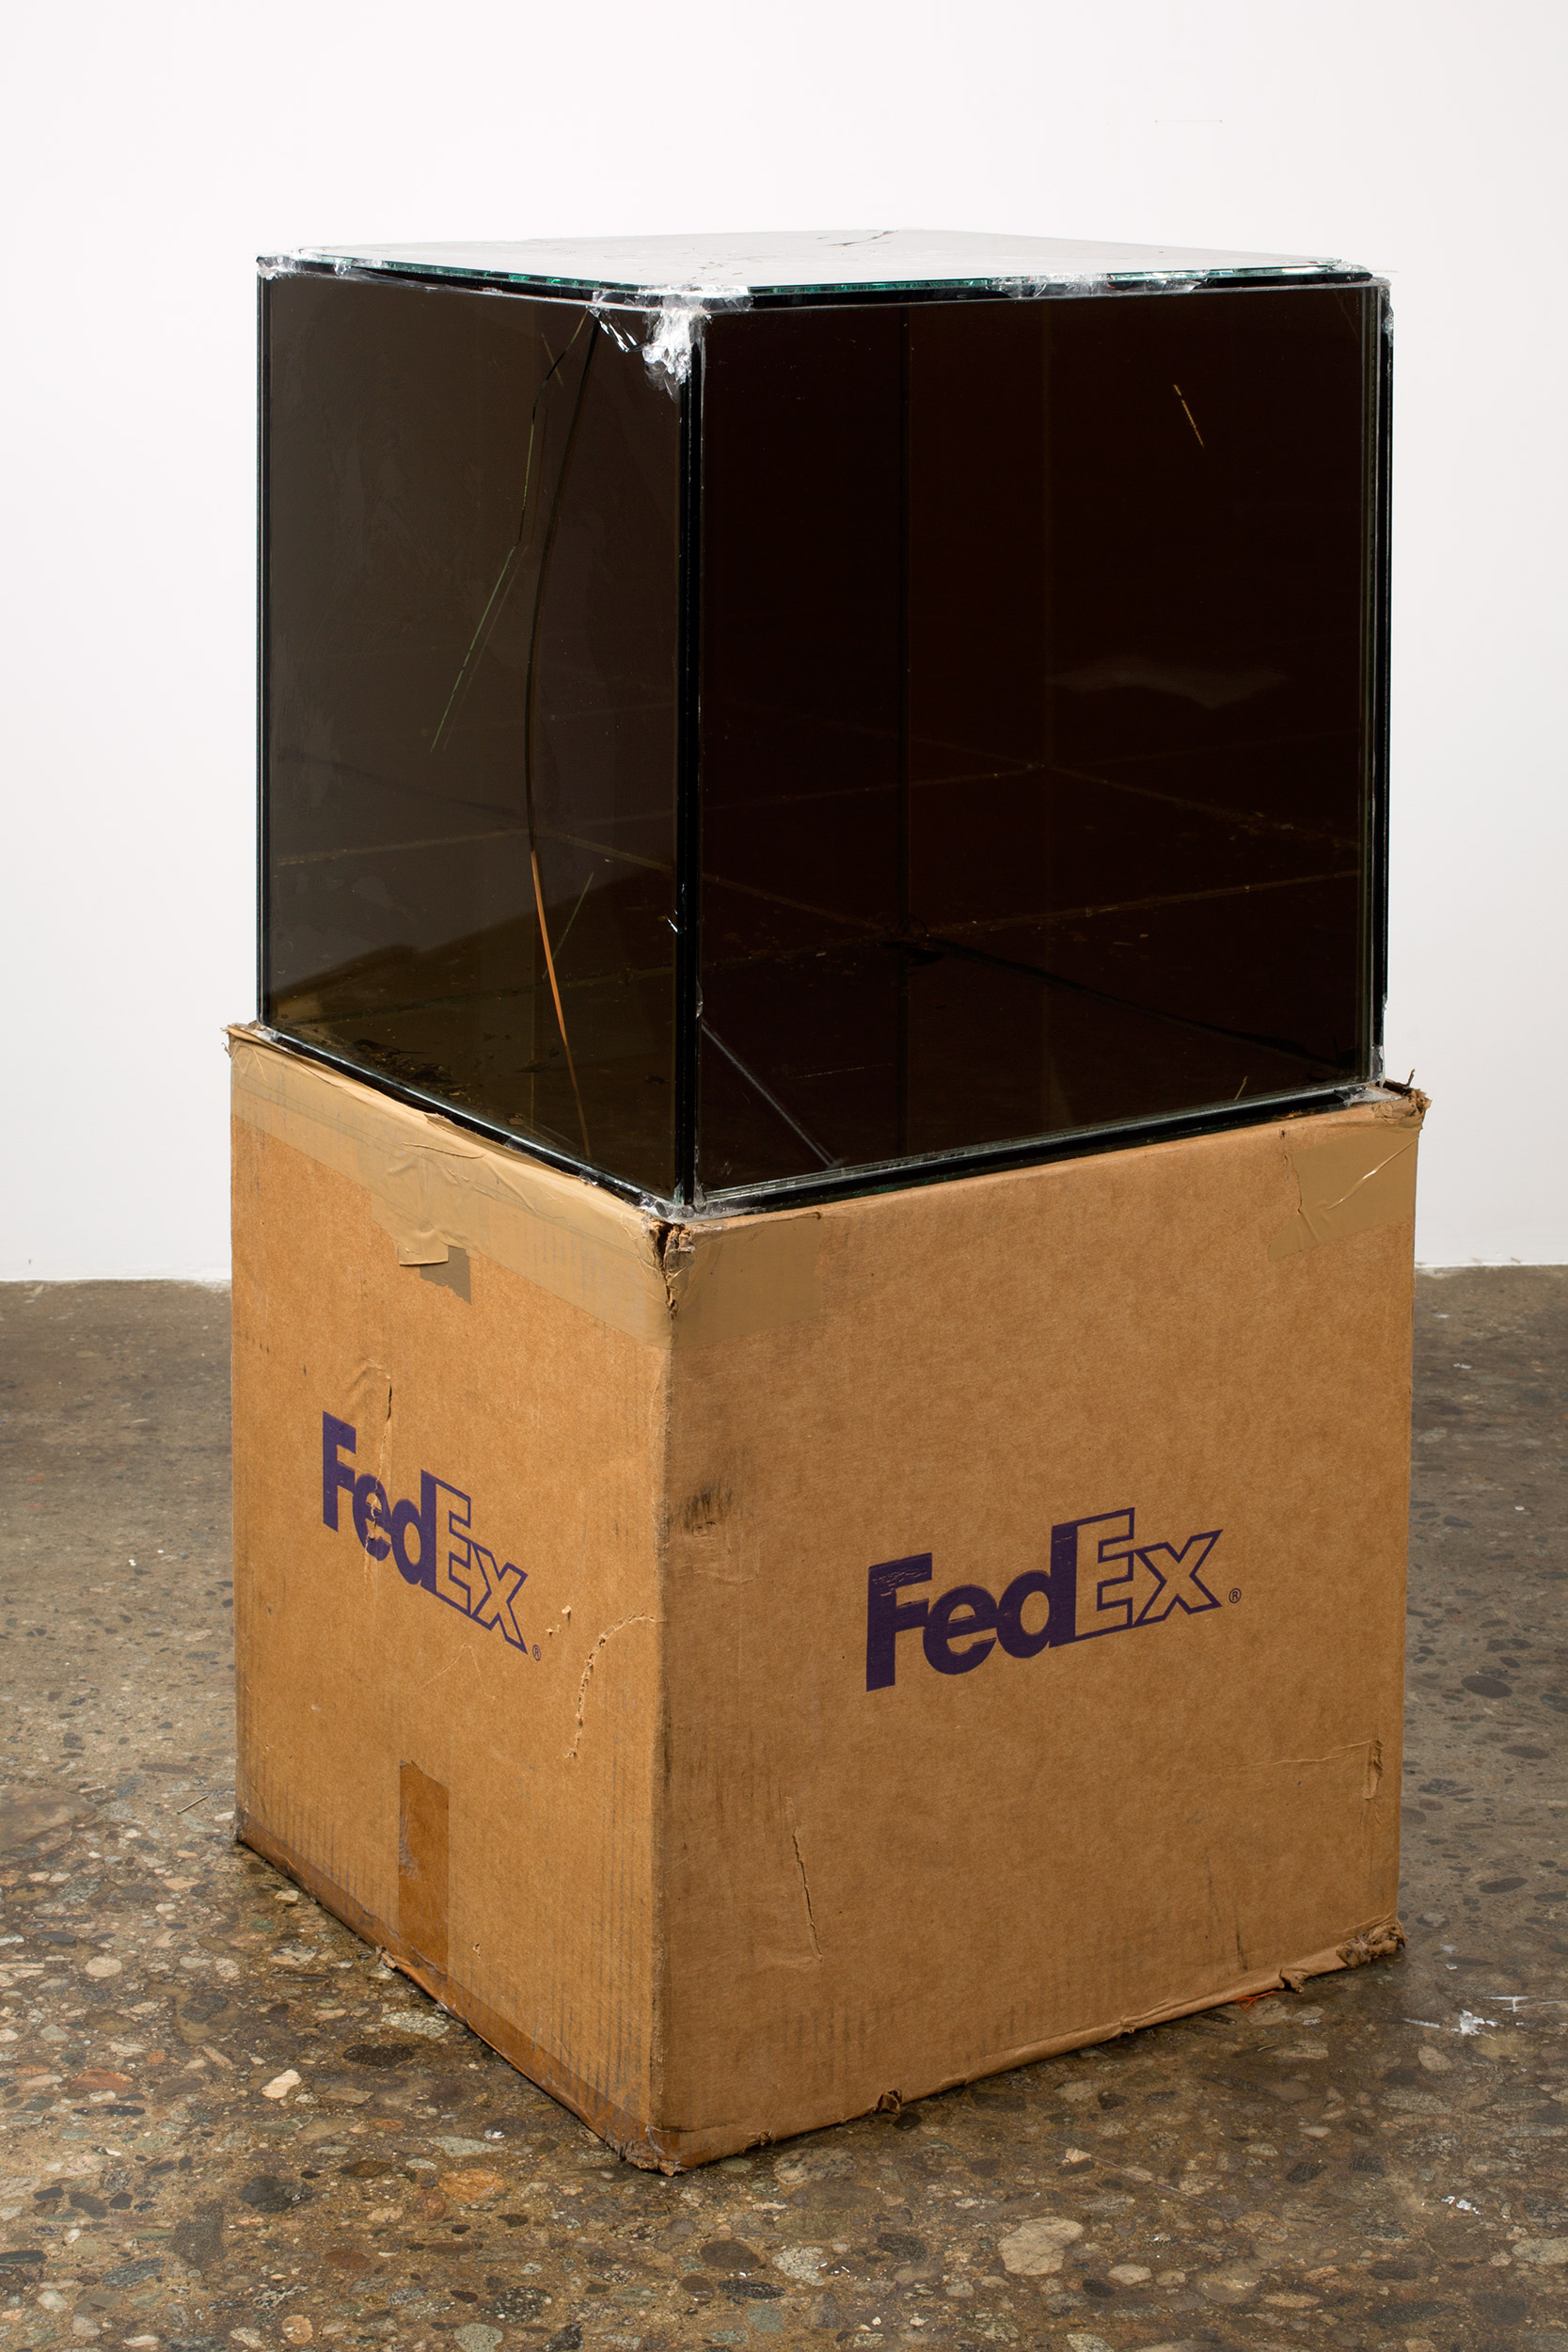 FedEx® Kraft Box  © 2005 FEDEX 330504 10/05 SSCC, Priority Overnight, Los Angeles–Miami trk#865344981303, October 29–30, 2008, Priority Overnight, Miami–Ann Arbor trk#861049125148, March 3–4, 2009, Standard Overnight, Ann Arbor–Los Angeles trk#868274625716, July 9–10, 2009, Standard Overnight, Los Angeles–New York trk# 774901718297, November 4–5, 2015, Standard Overnight, New York–Los Angeles trk#775241156204, December 21–22, 2015   2008–  Laminated Mirropane, FedEx shipping box, accrued FedEx shipping and tracking labels, silicone, metal, tape  16 x 16 x 16 inches   FedEx Glass Works, 2007–    Pulleys, Cogwheels, Mirrors, and Windows, 2009